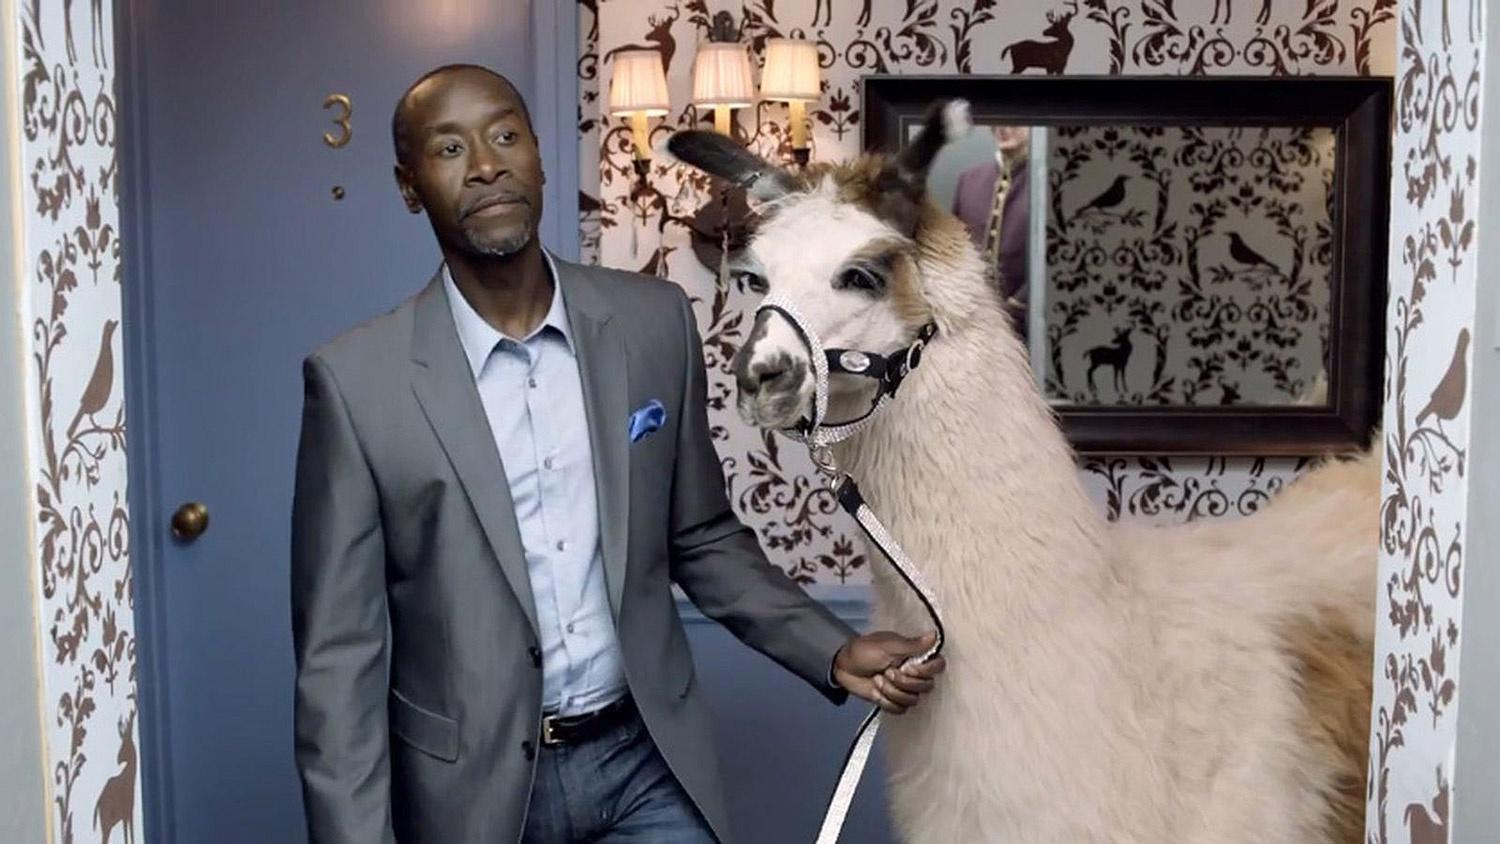 From Wassup to Darth Vader, the 10 greatest Super Bowl commercials of all time